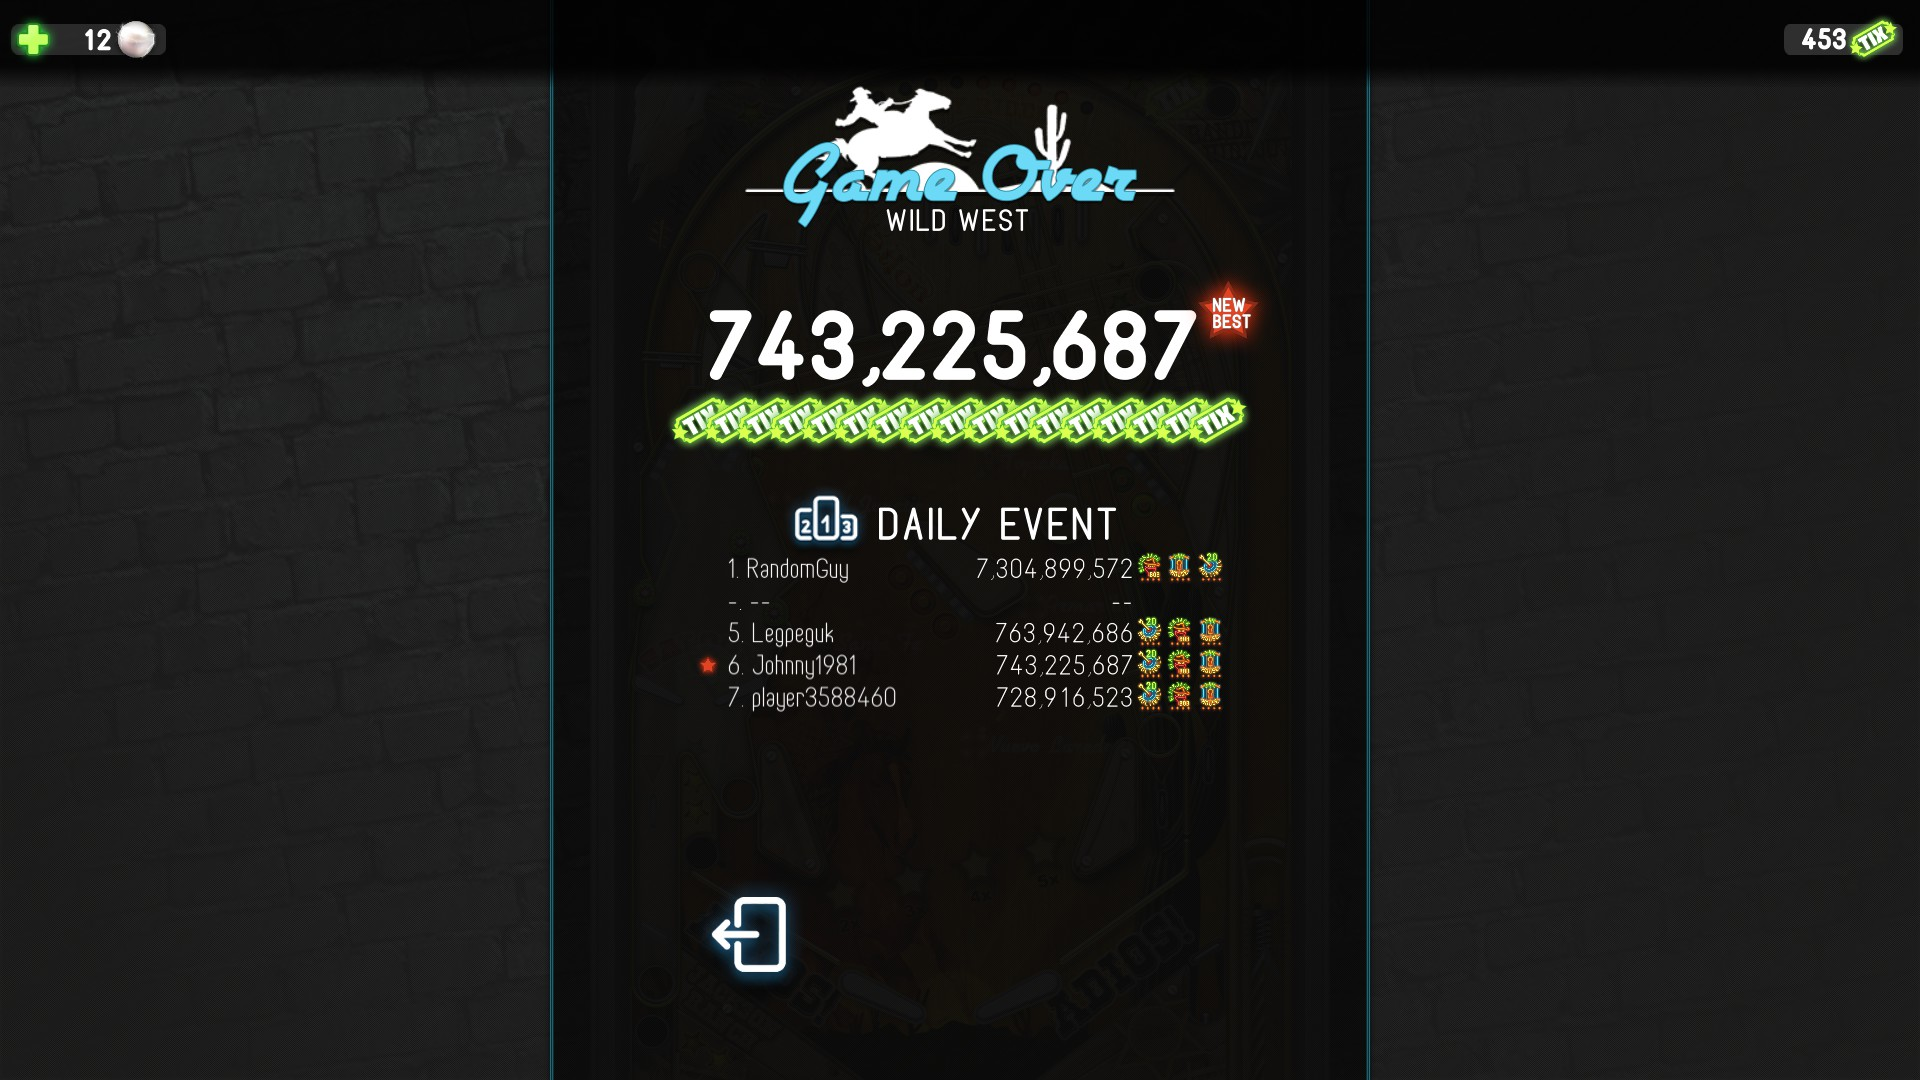 Pinball Deluxe: Reloaded: Wild West 743,225,687 points